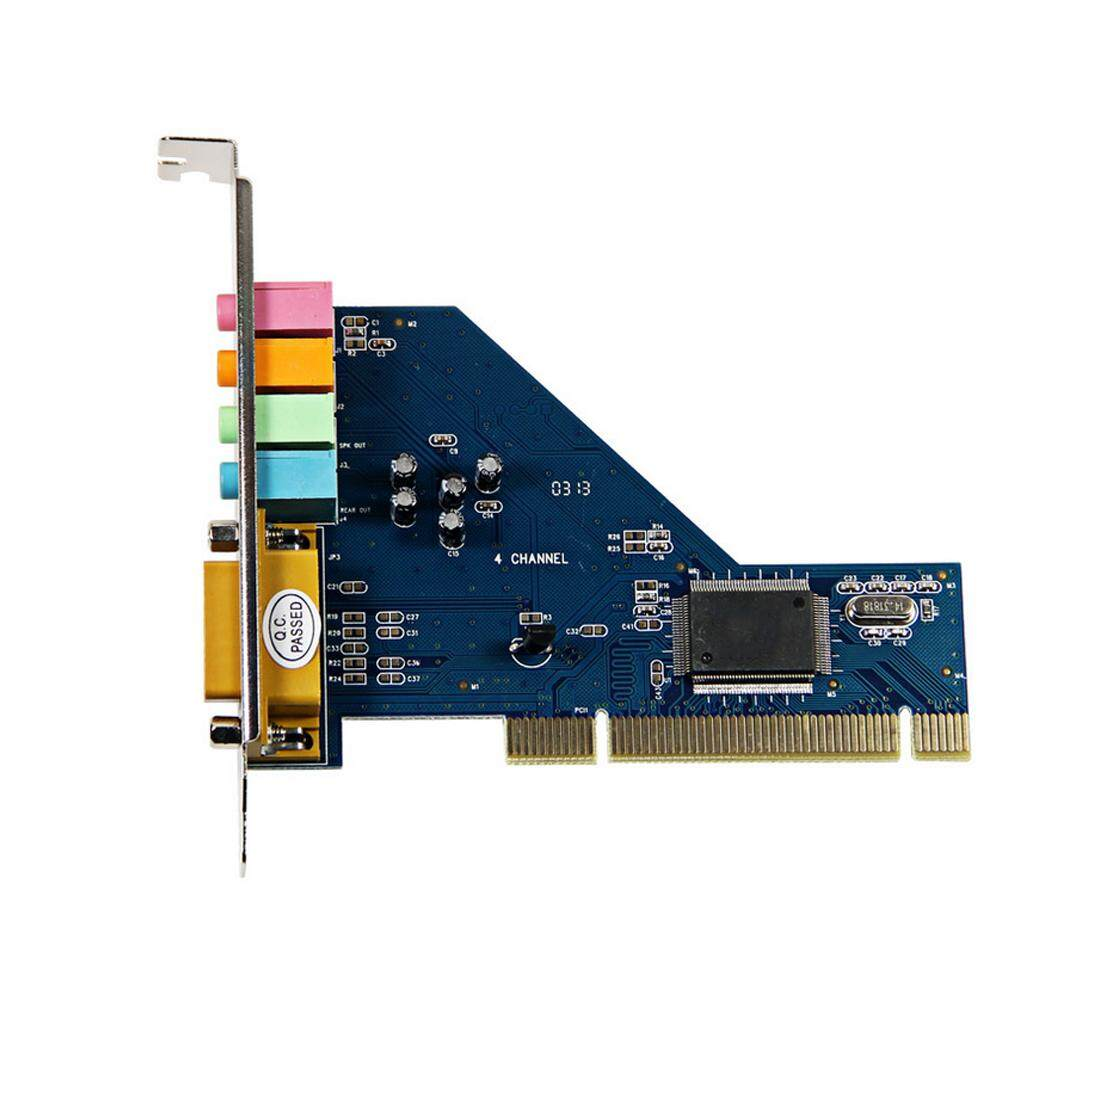 4 Channel 8738 Chip 3d Audio Stereo Pci Sound Card For Win7 64 Bit By Hhhappy Store.